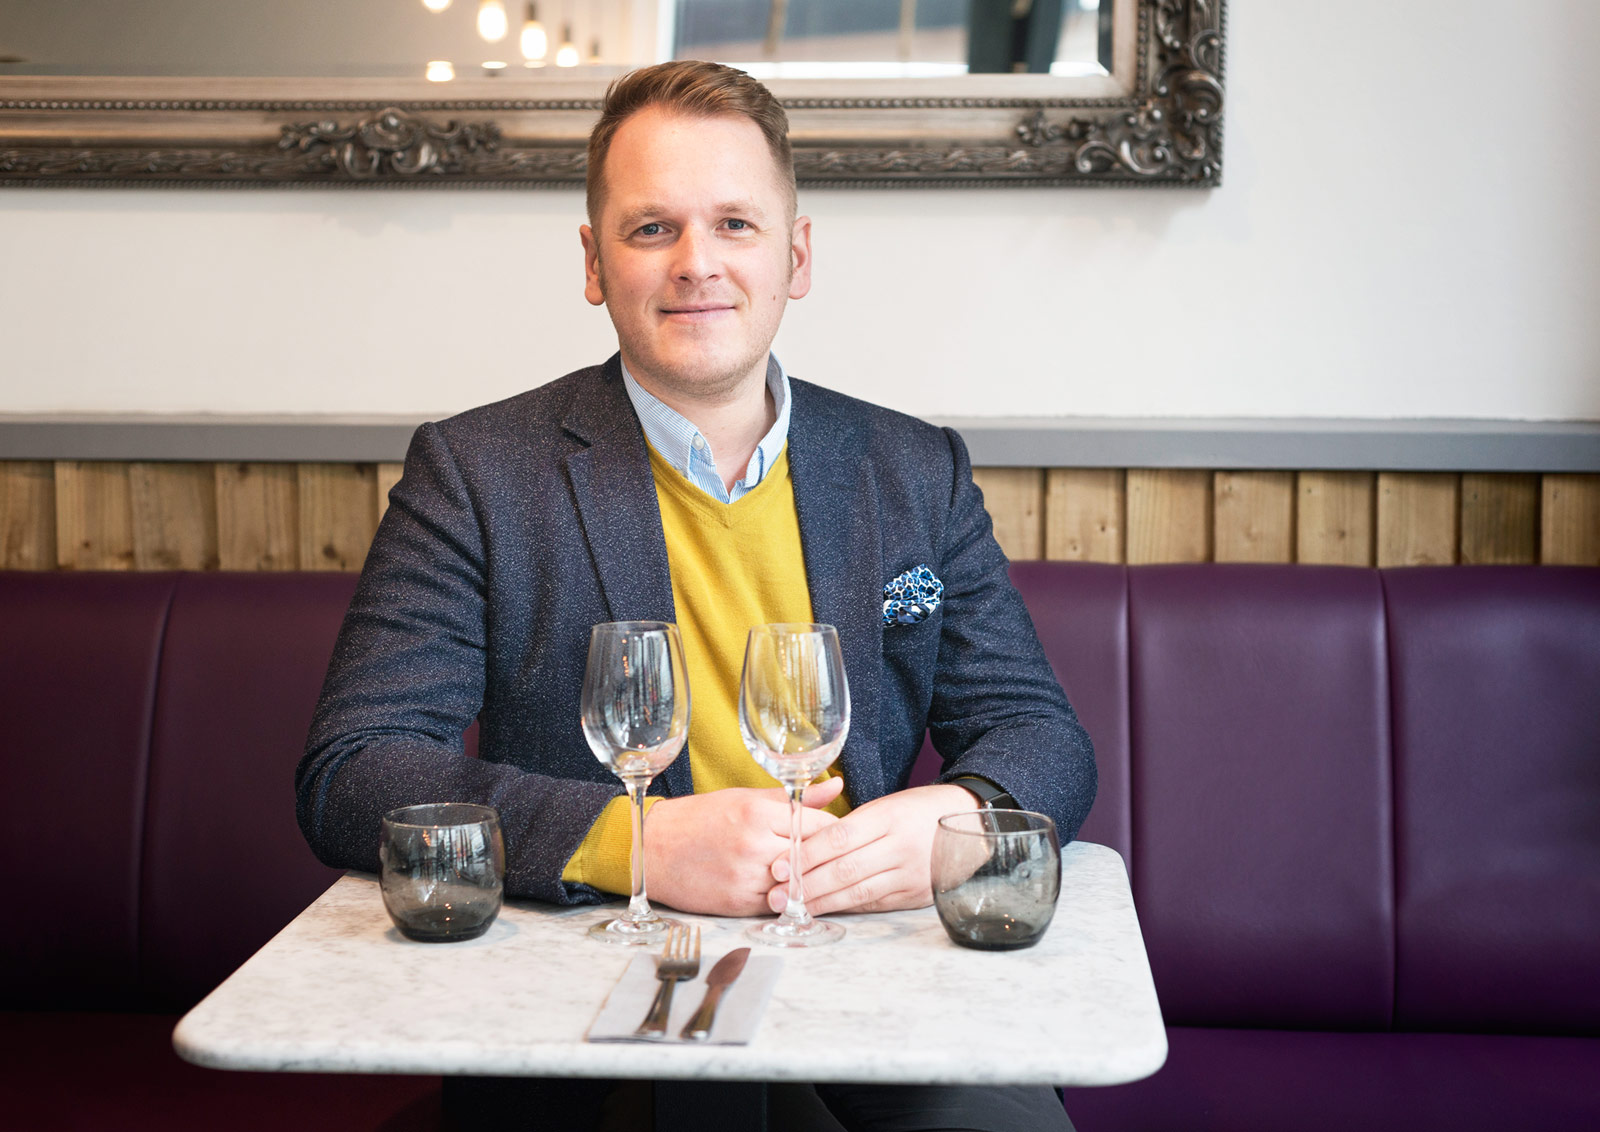 Vegetarian Restaurant Group 1847 Announces New Food & Beverage Director